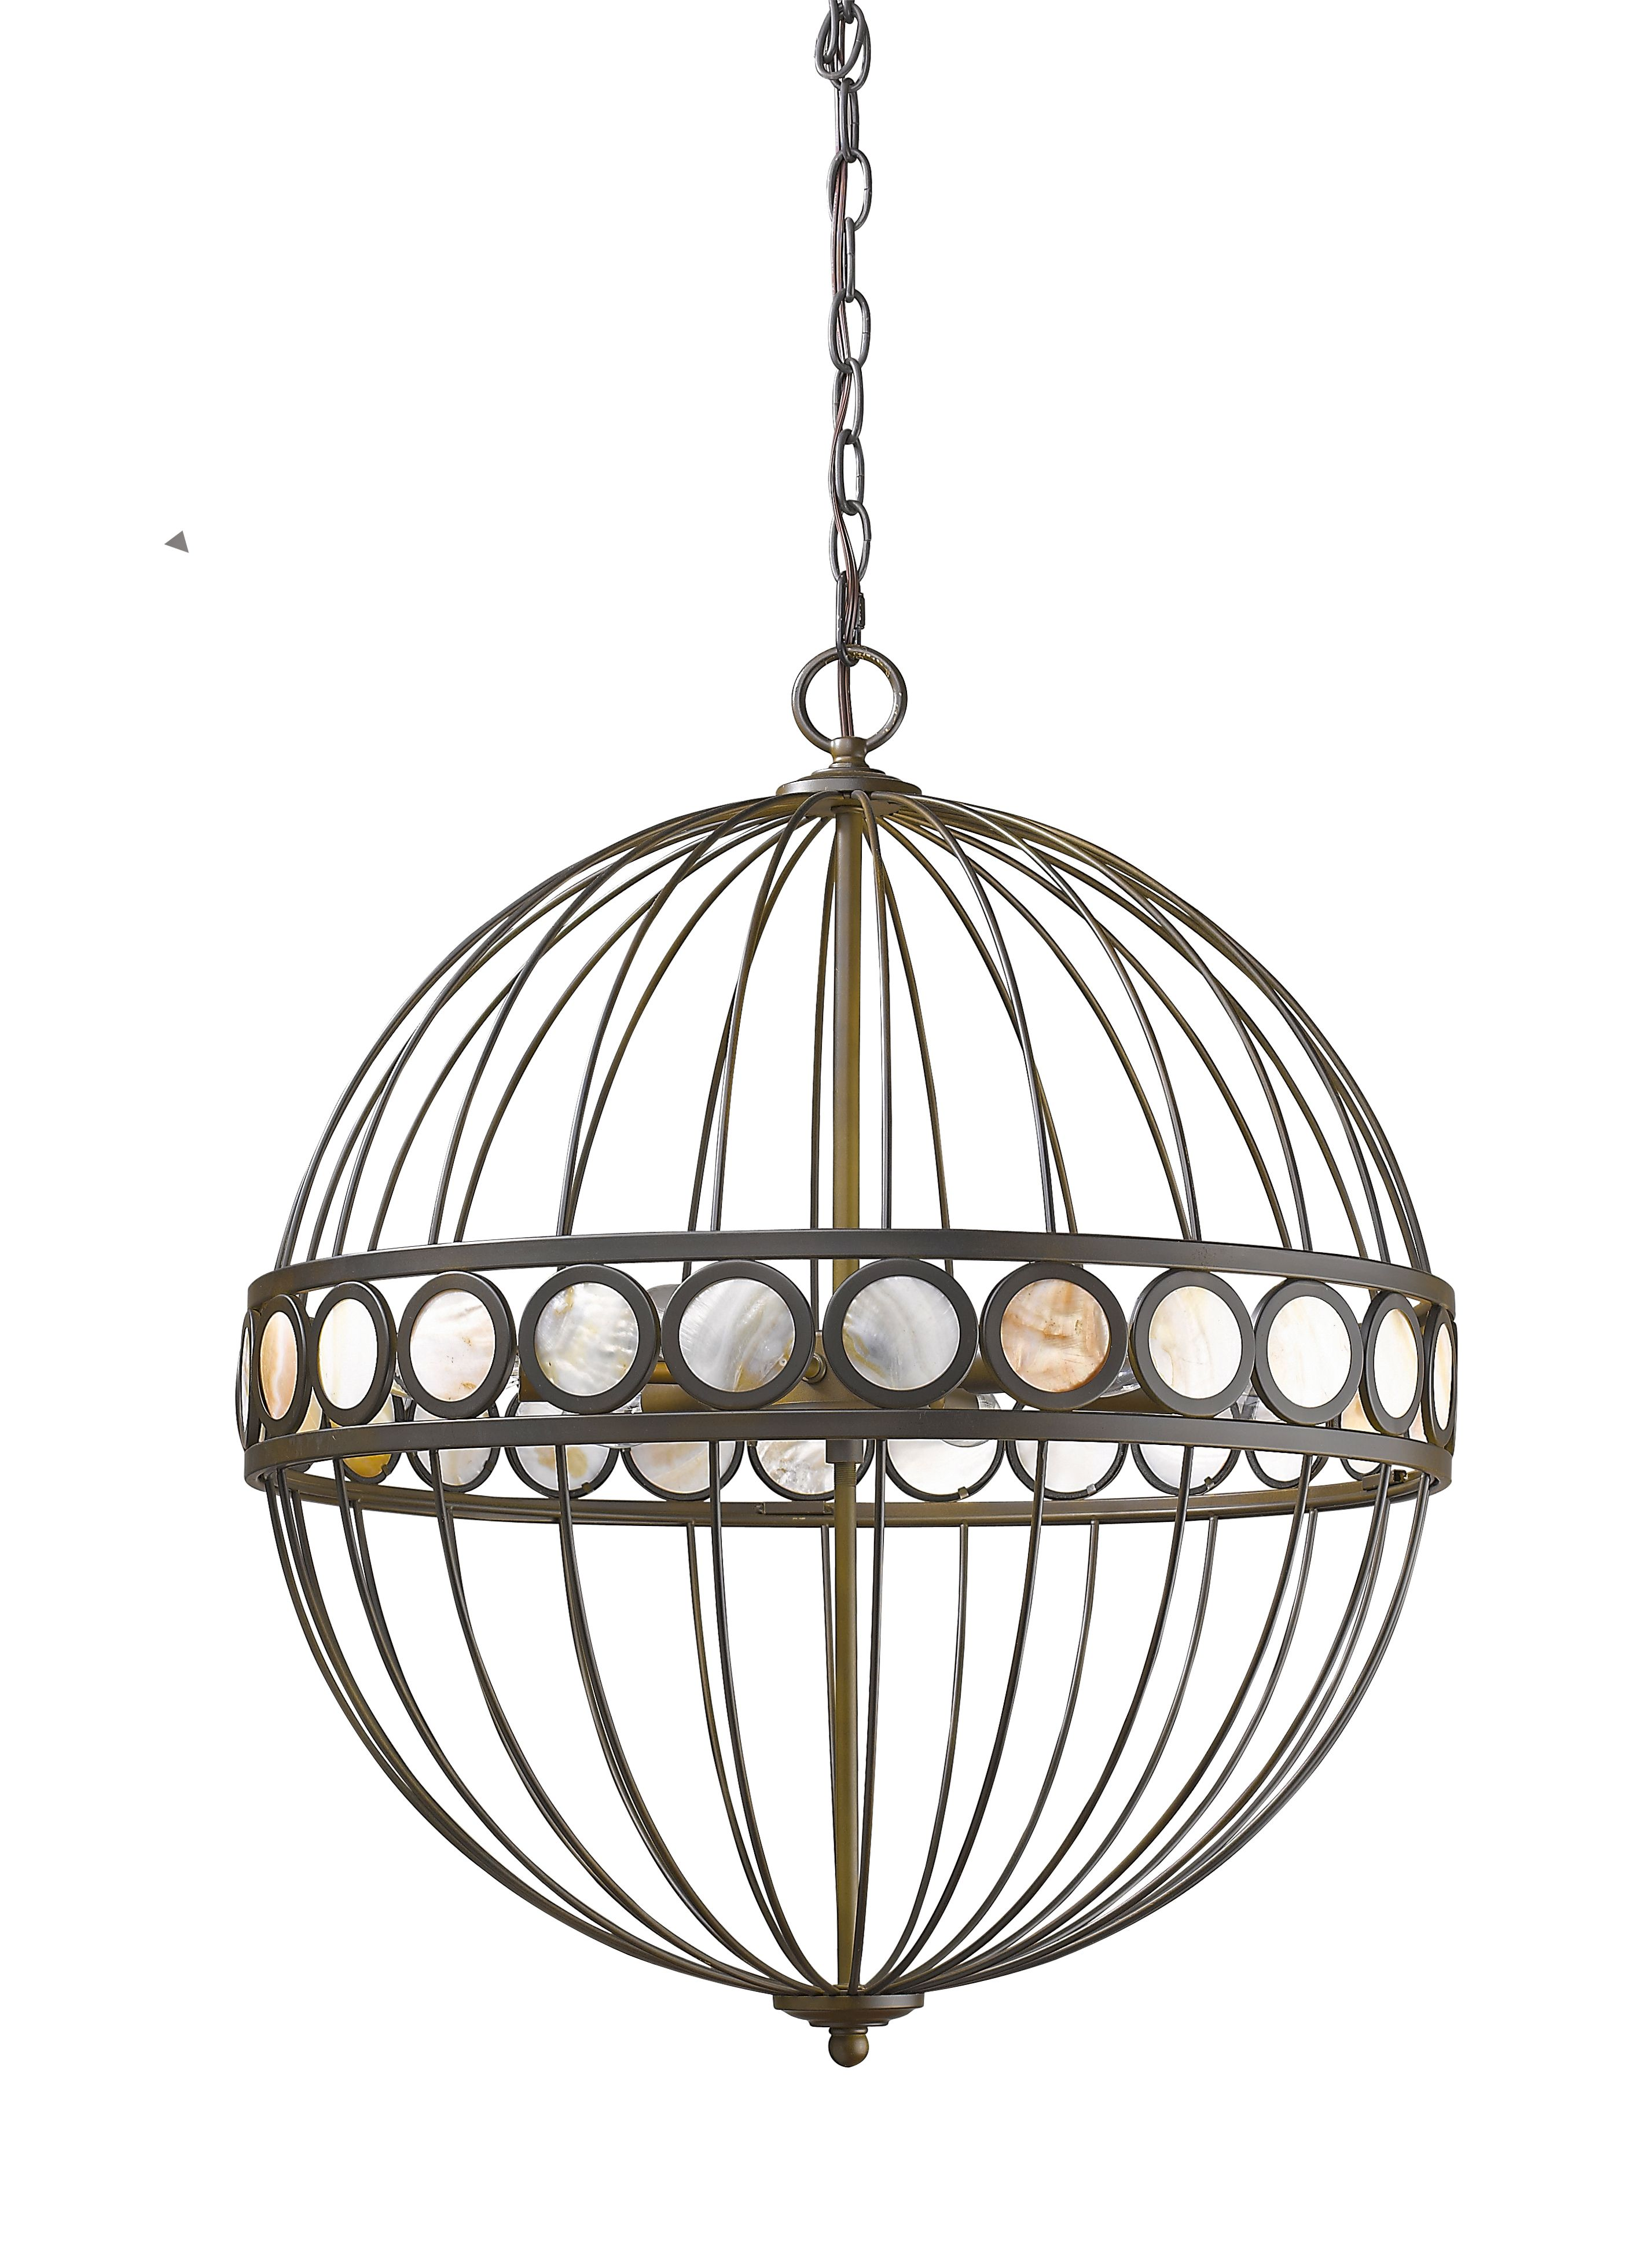 Aria 6 light chandelier in oil rubbed bronze with mother of pearl